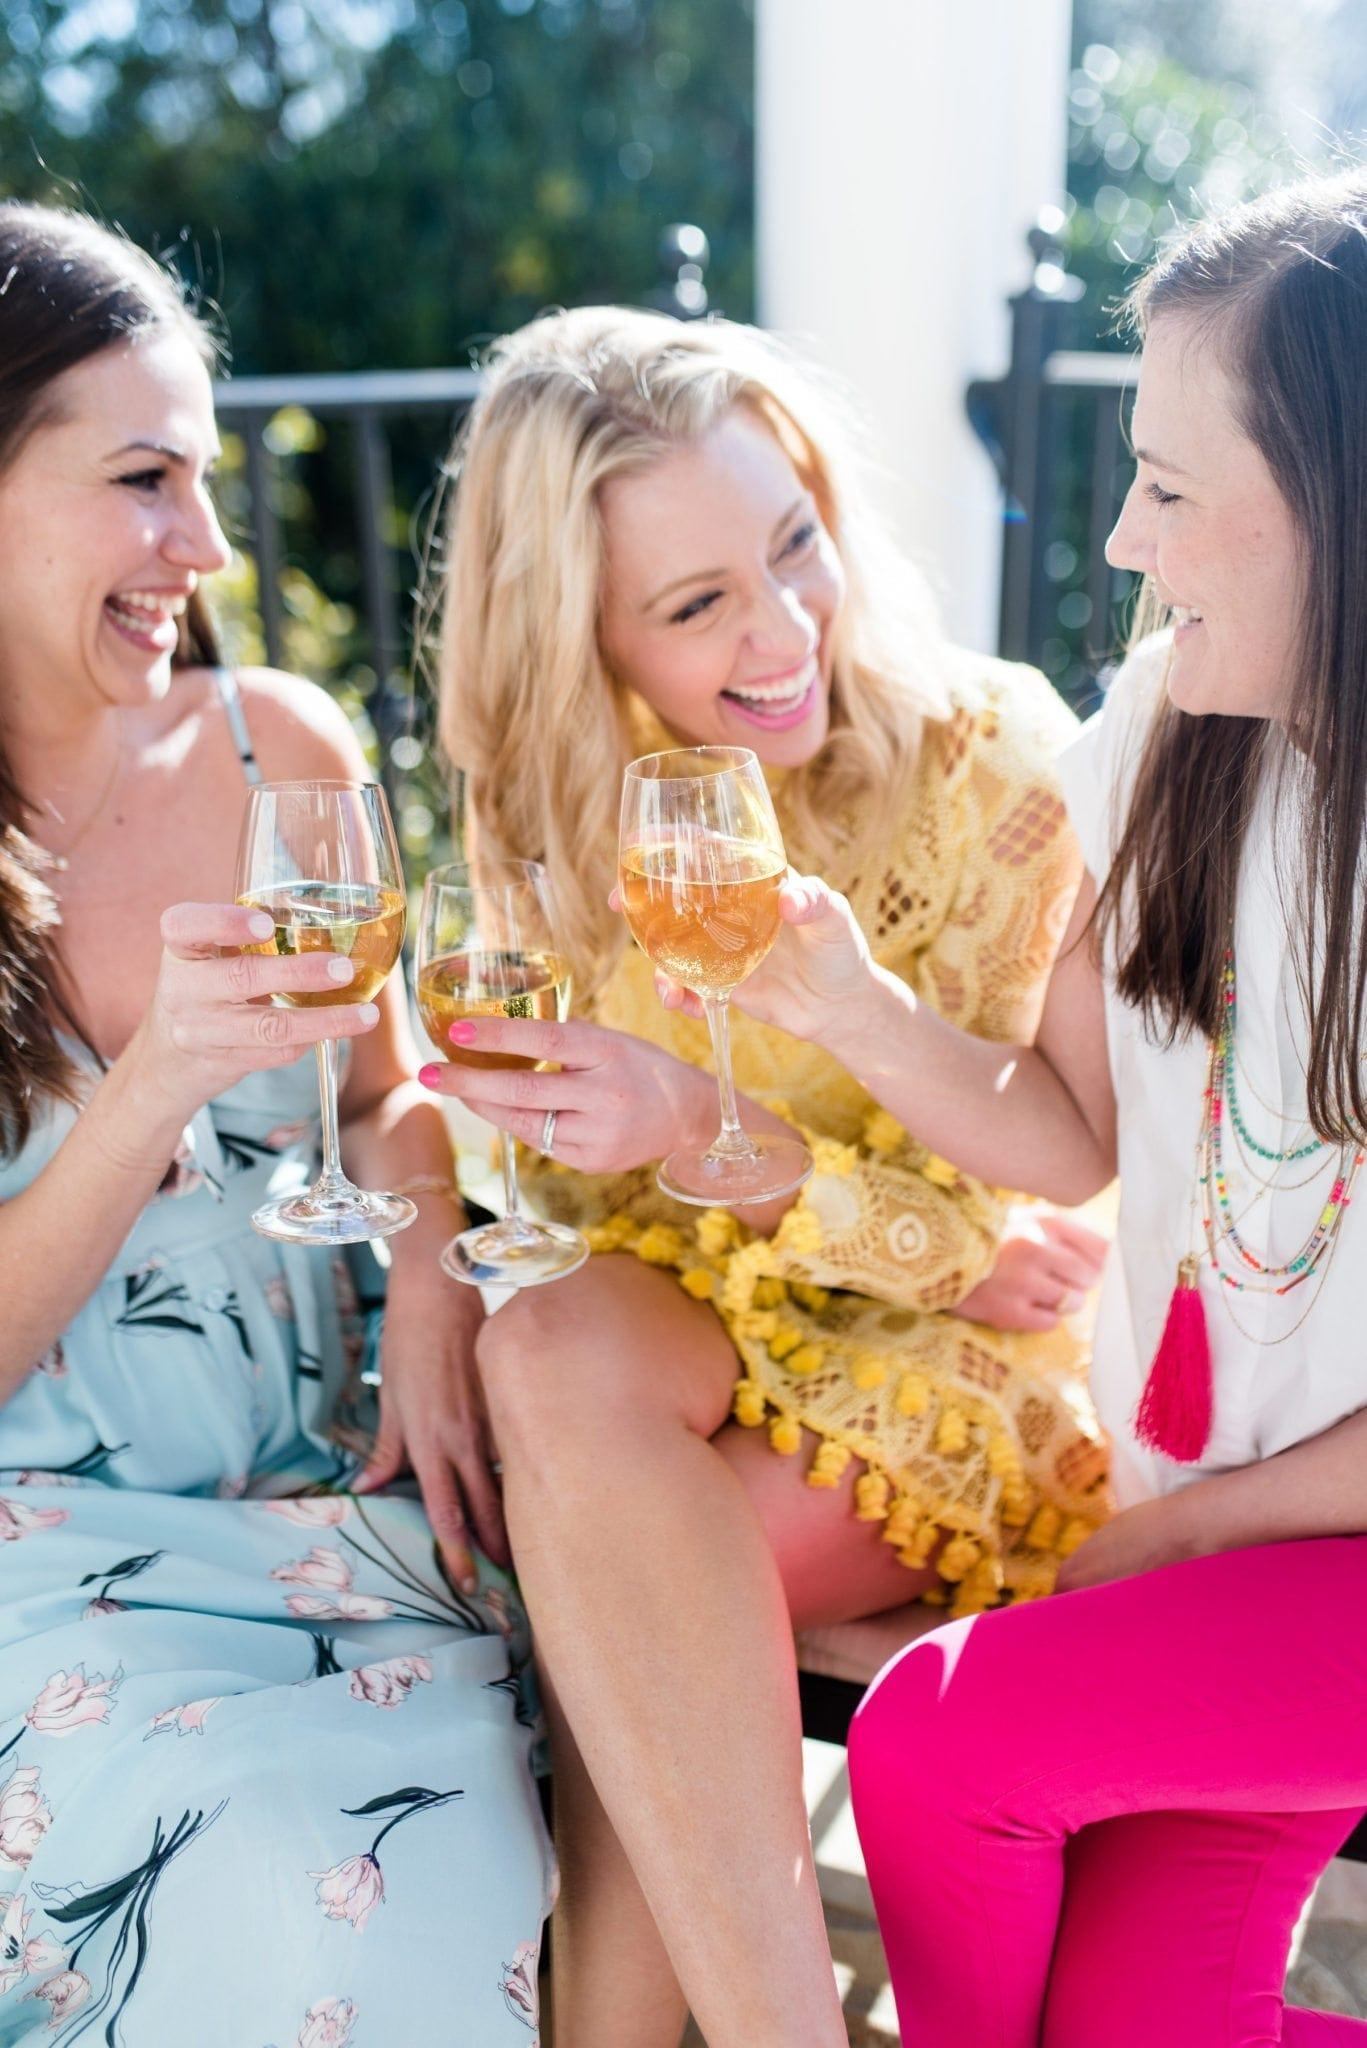 How to throw the perfect party with girlfriends. If you're having your girlfriends over and looking for a great Spotify channel to listen to, here are my favorite songs for summer parties!